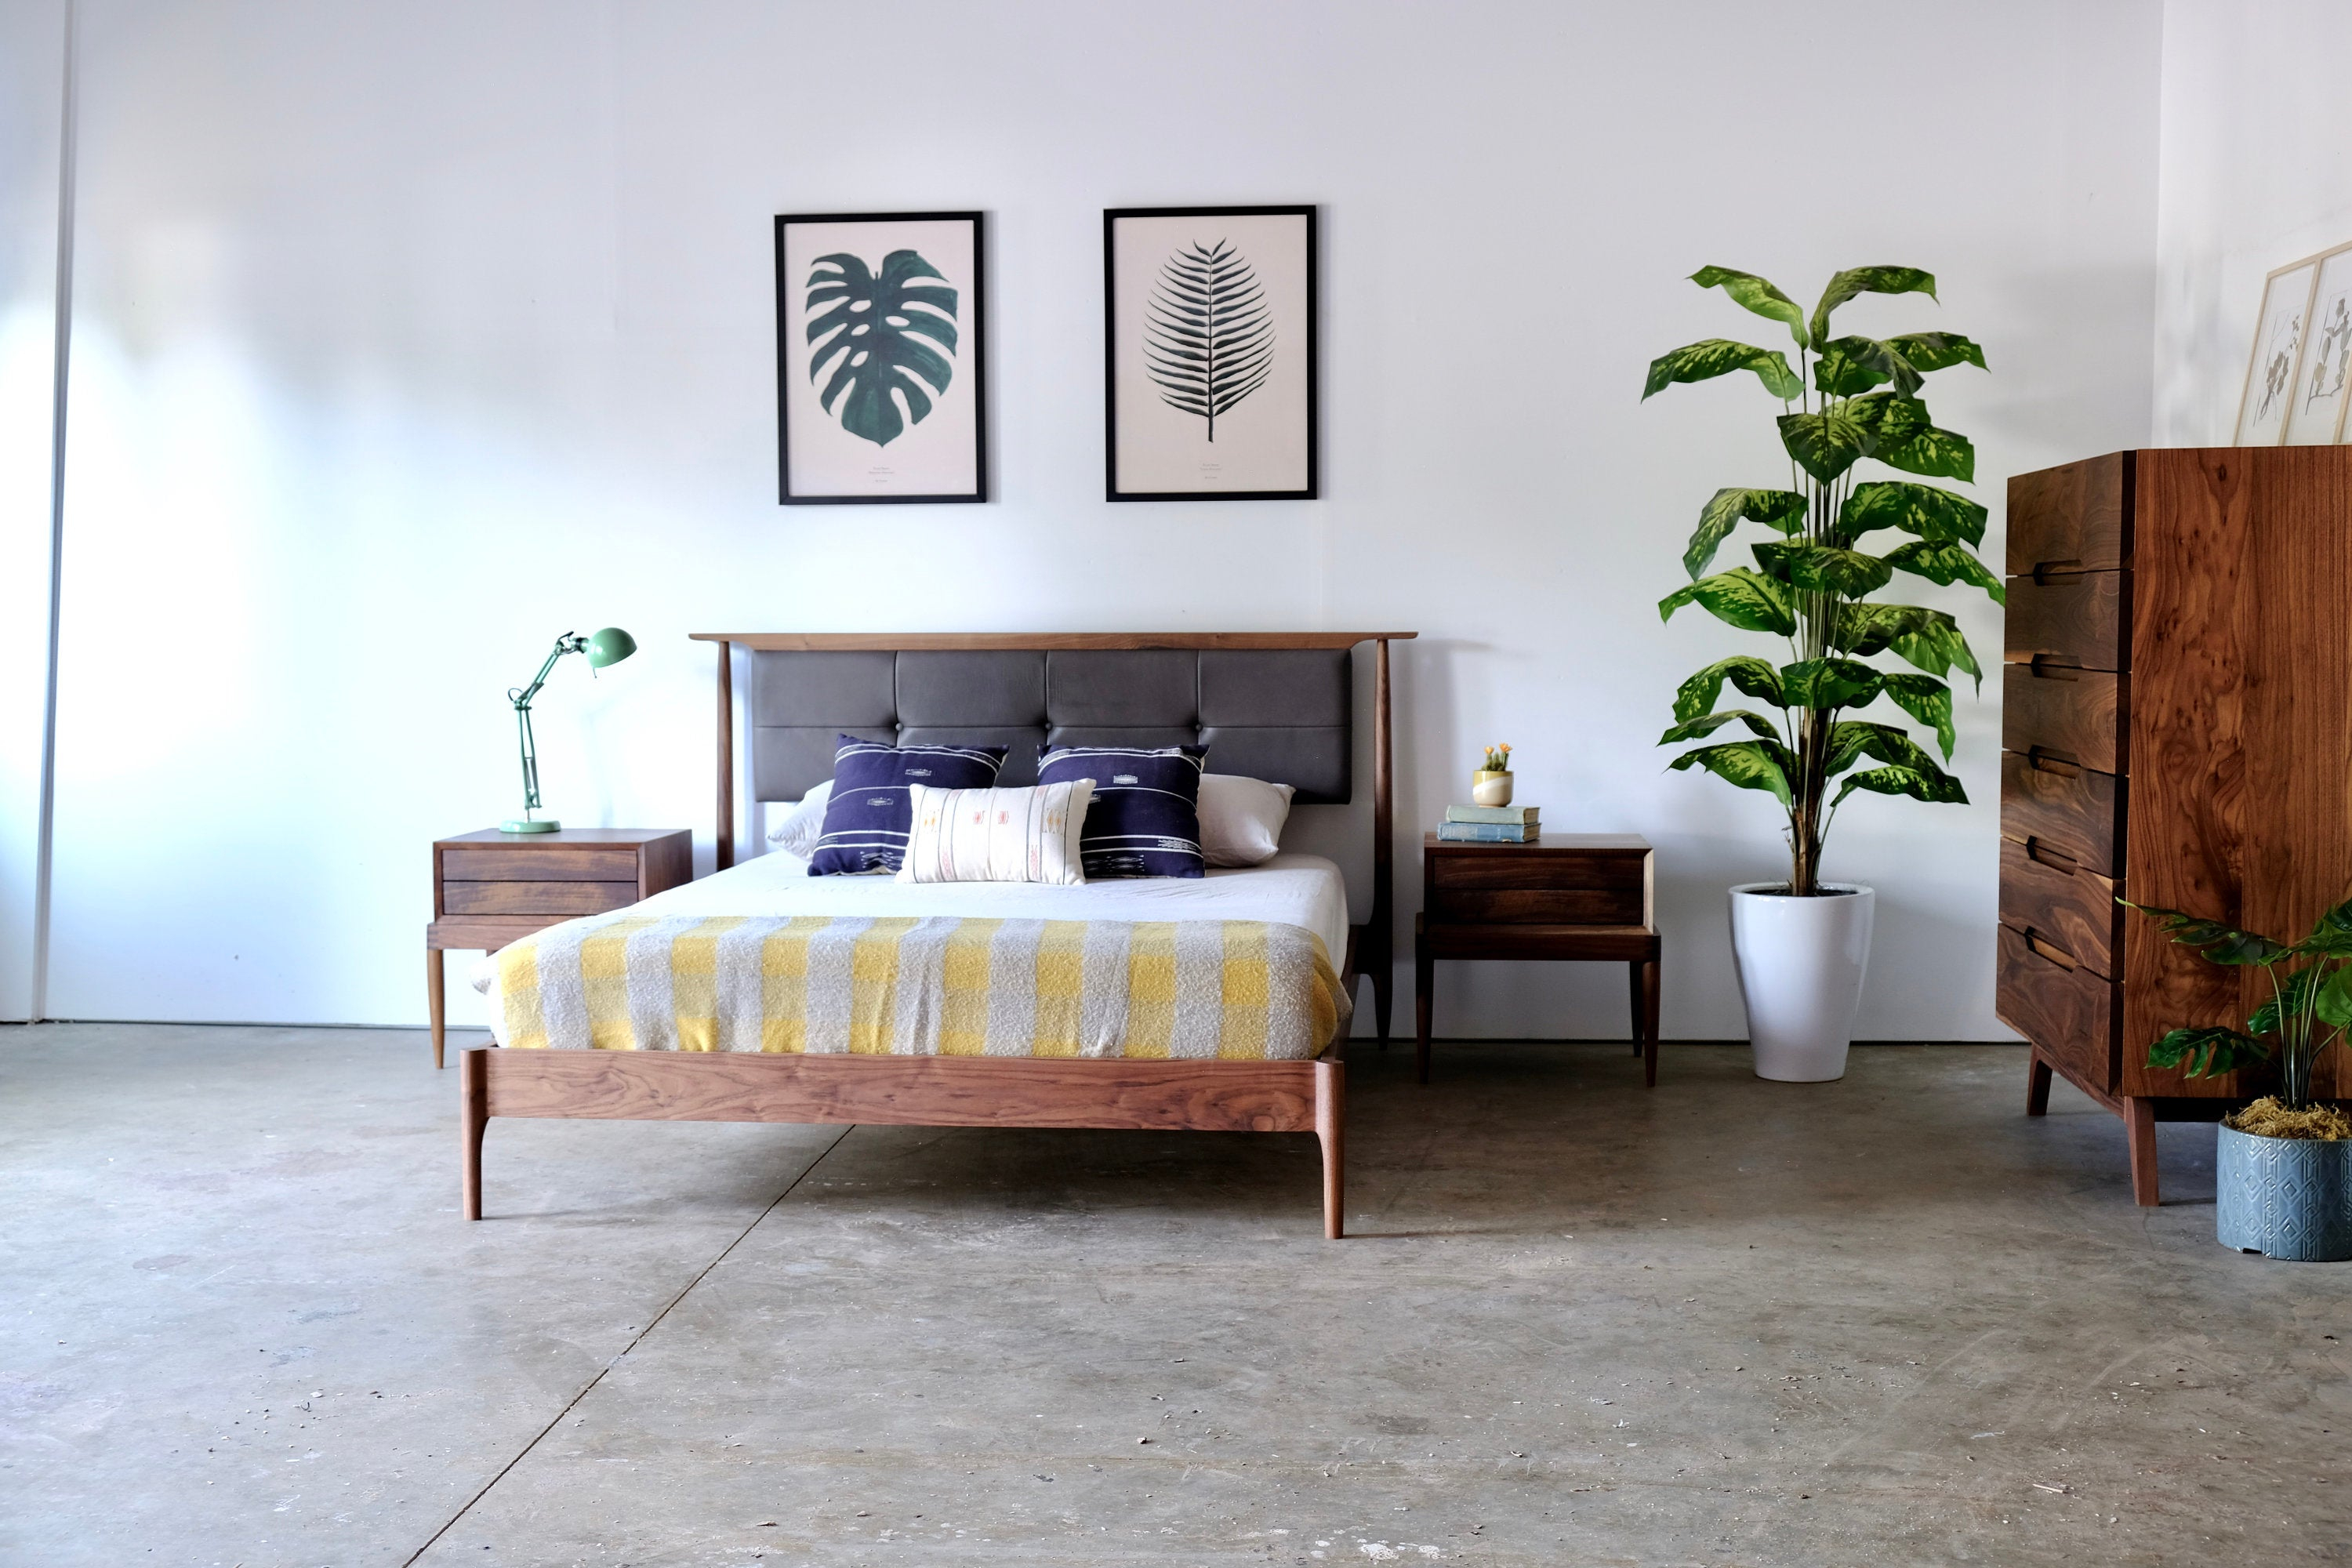 Mid Century Modern Platform Bed With Upholstered Headboard Custom Made Bedroom Furniture Danish Style Storage Bed King Queen Full Or Twin inside Mid Century Modern Bedroom Set